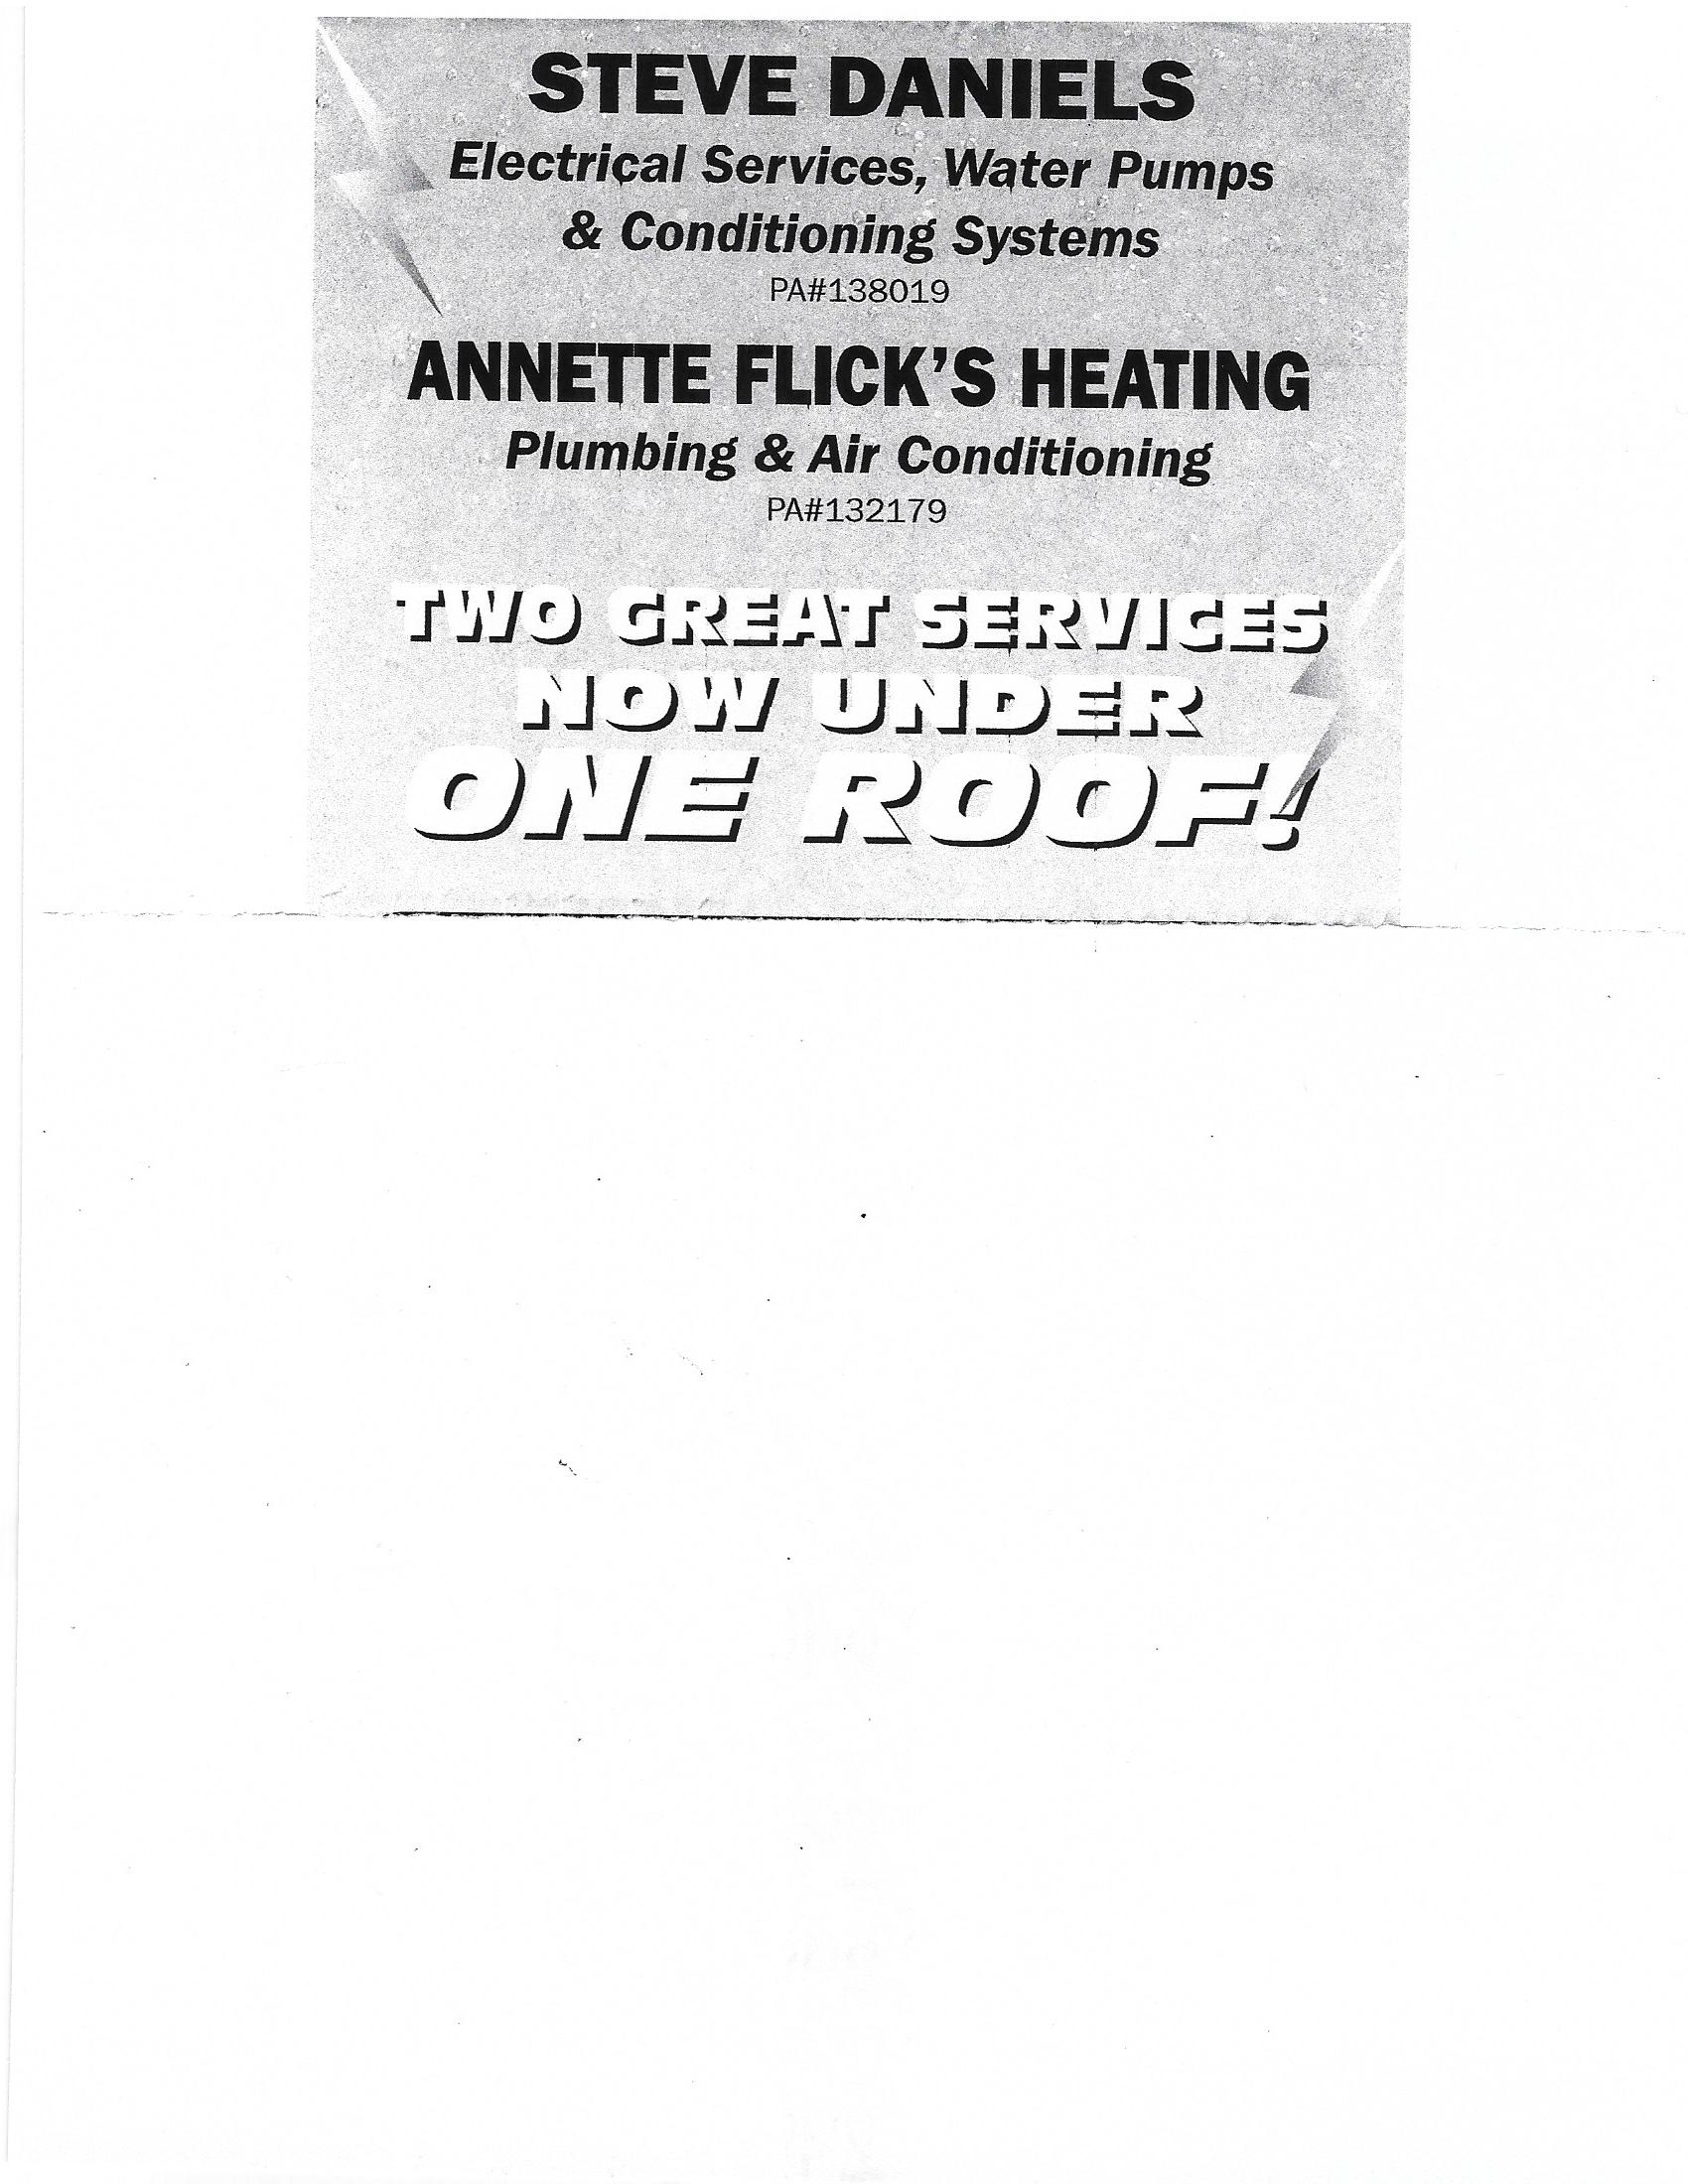 Flick's Heating, Plumbing, and A/C